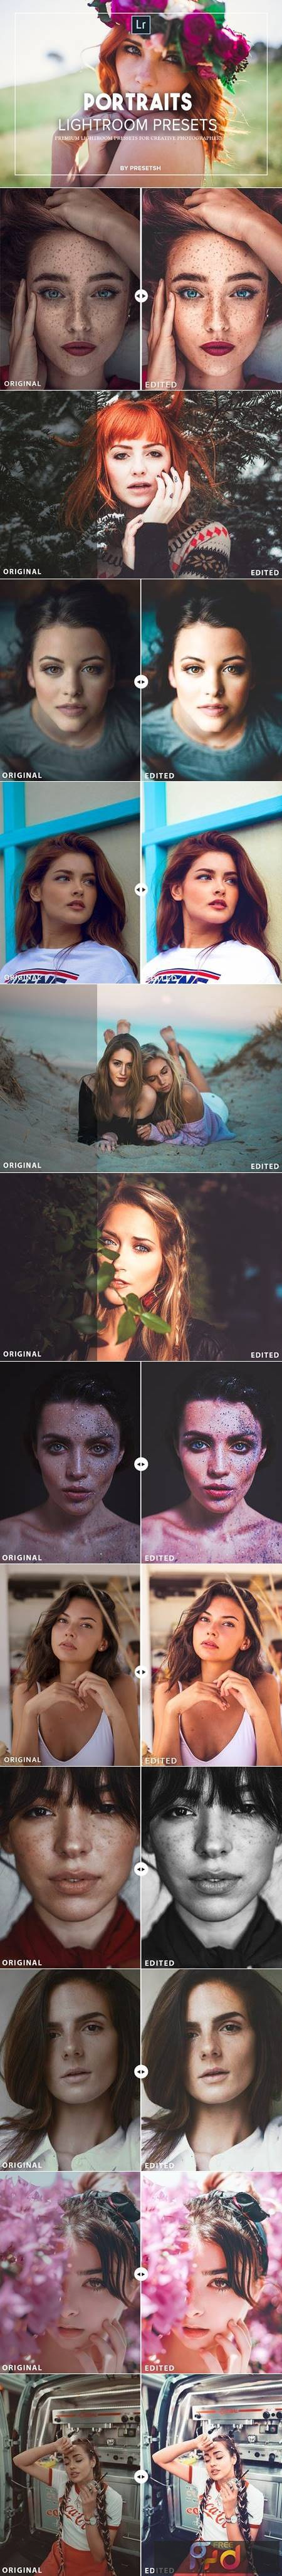 25 Portraits Collection Lightroom Presets 3566282 1